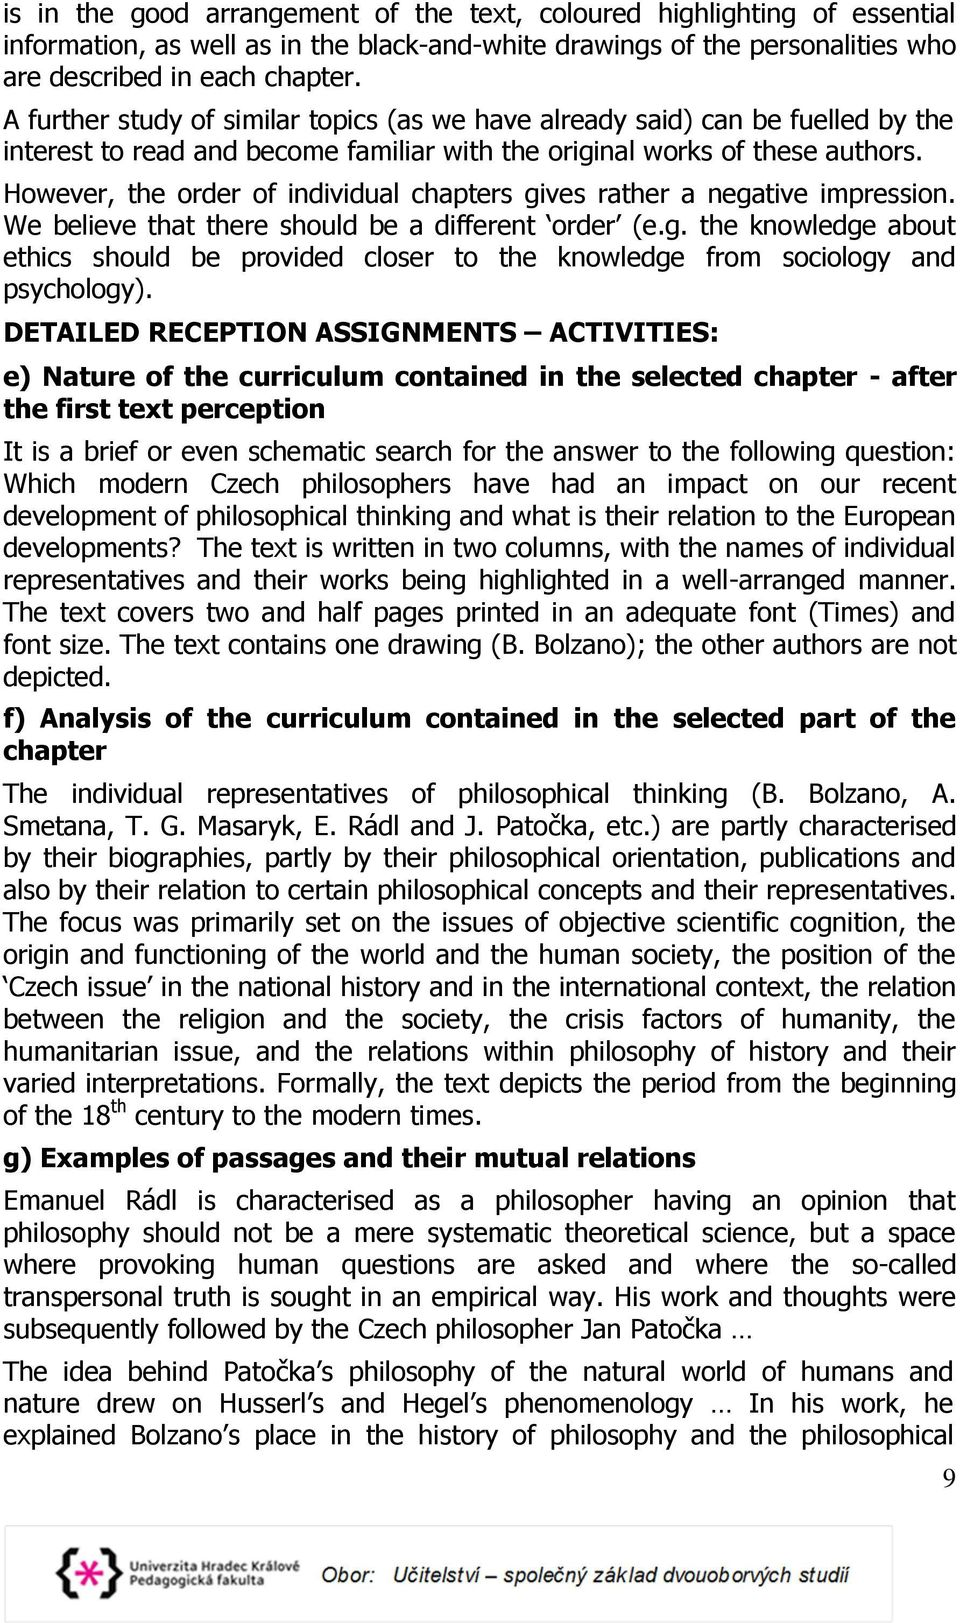 However, the order of individual chapters gives rather a negative impression. We believe that there should be a different order (e.g. the knowledge about ethics should be provided closer to the knowledge from sociology and psychology).